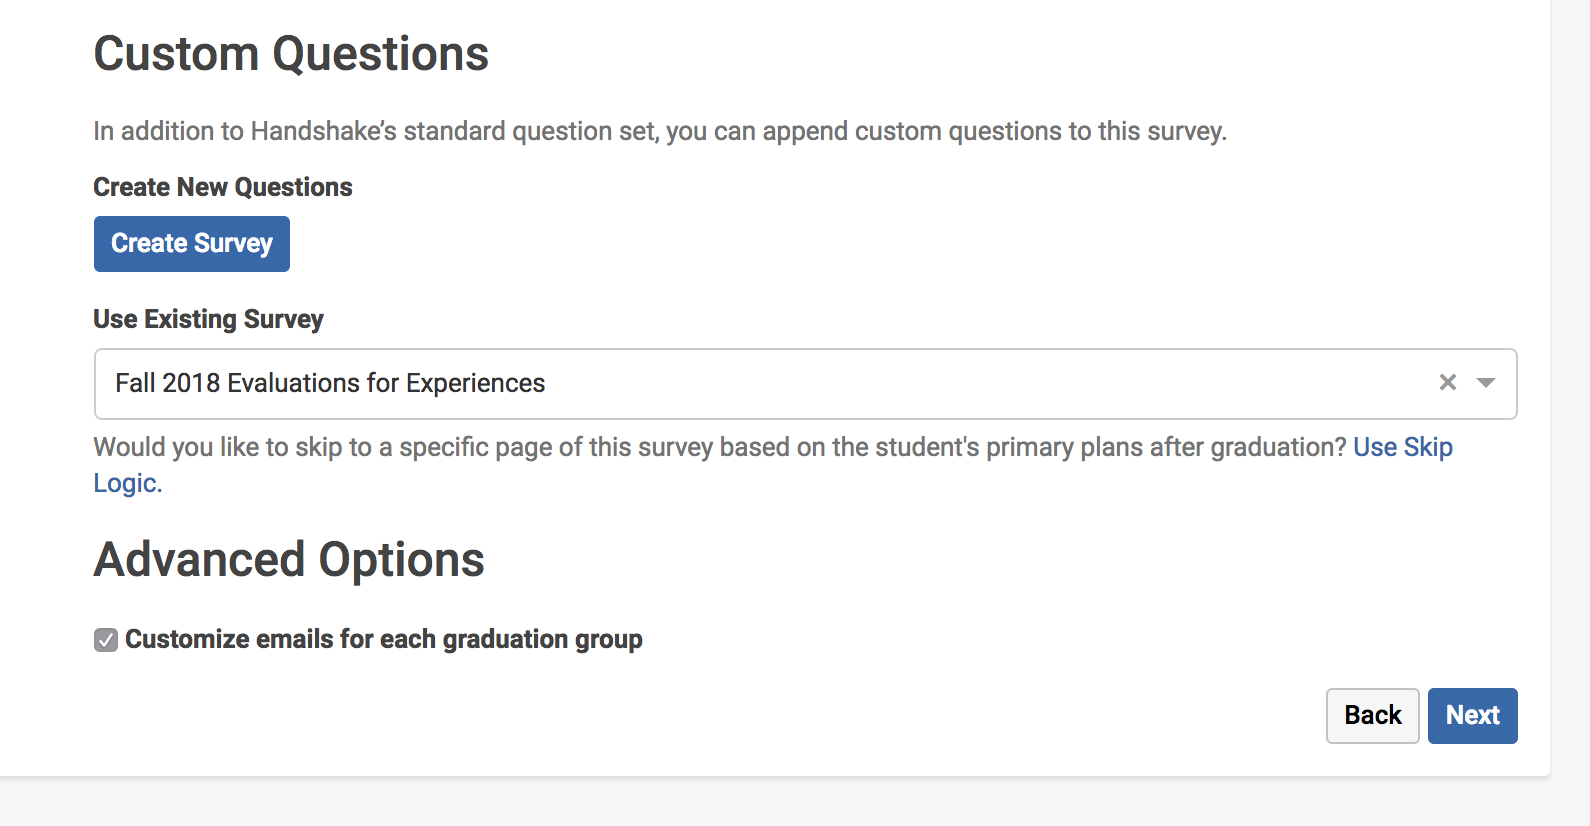 How To Send Custom Invitation And Reminder Emails To Each Graduation